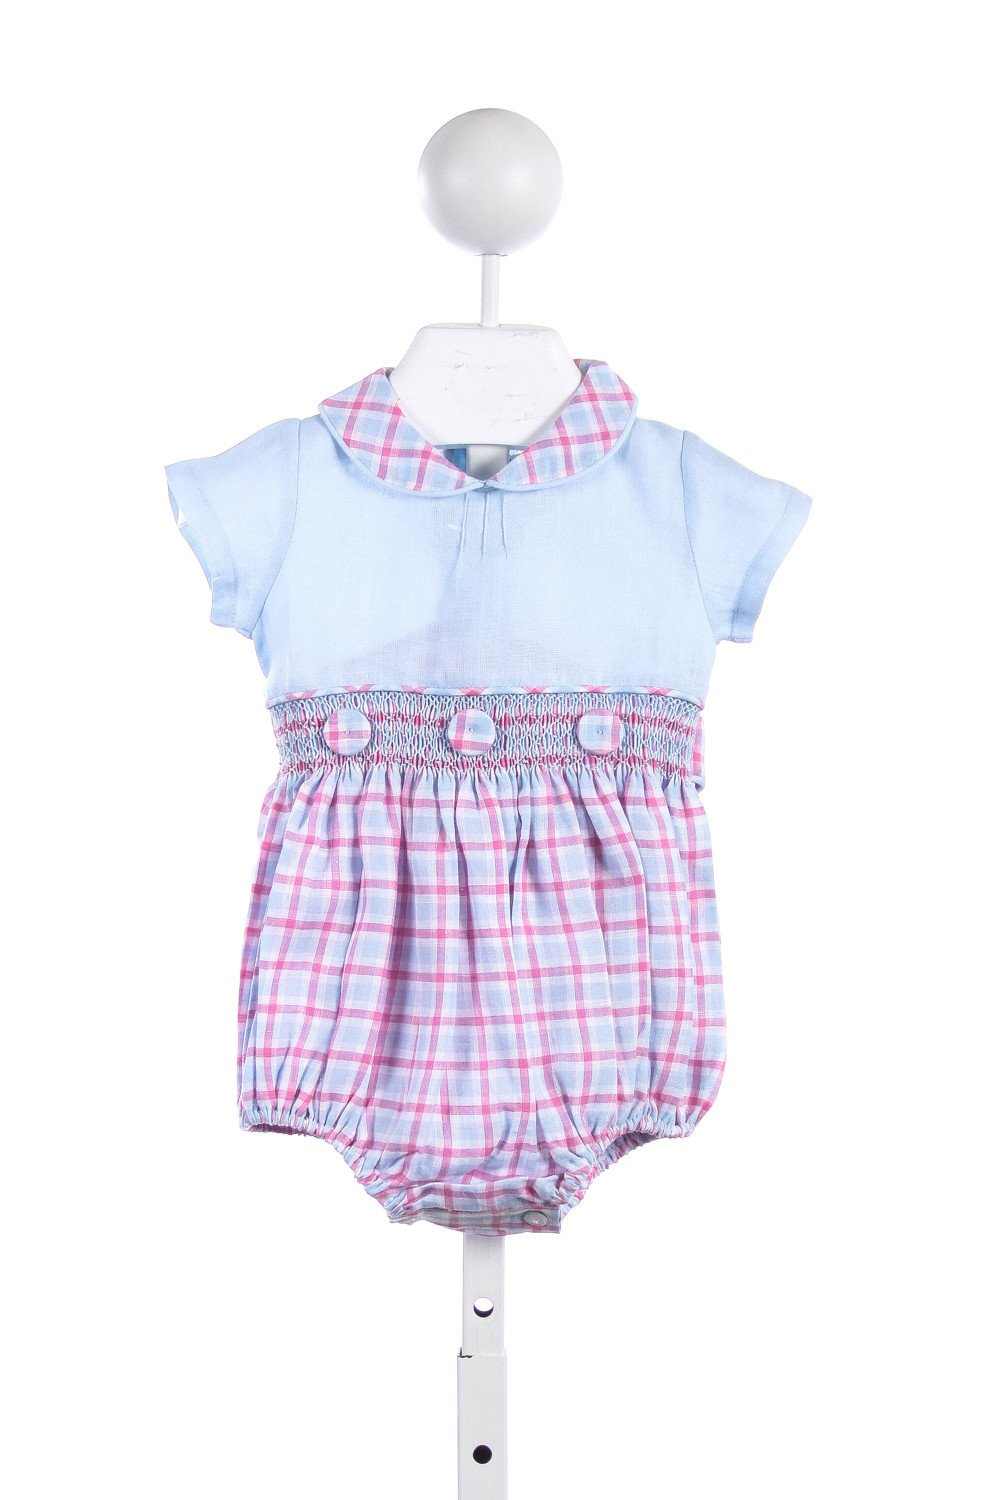 ALICE KATHLEEN BLUE AND PINK/BLUE/WHITE PLAID LINEN BUBBLE